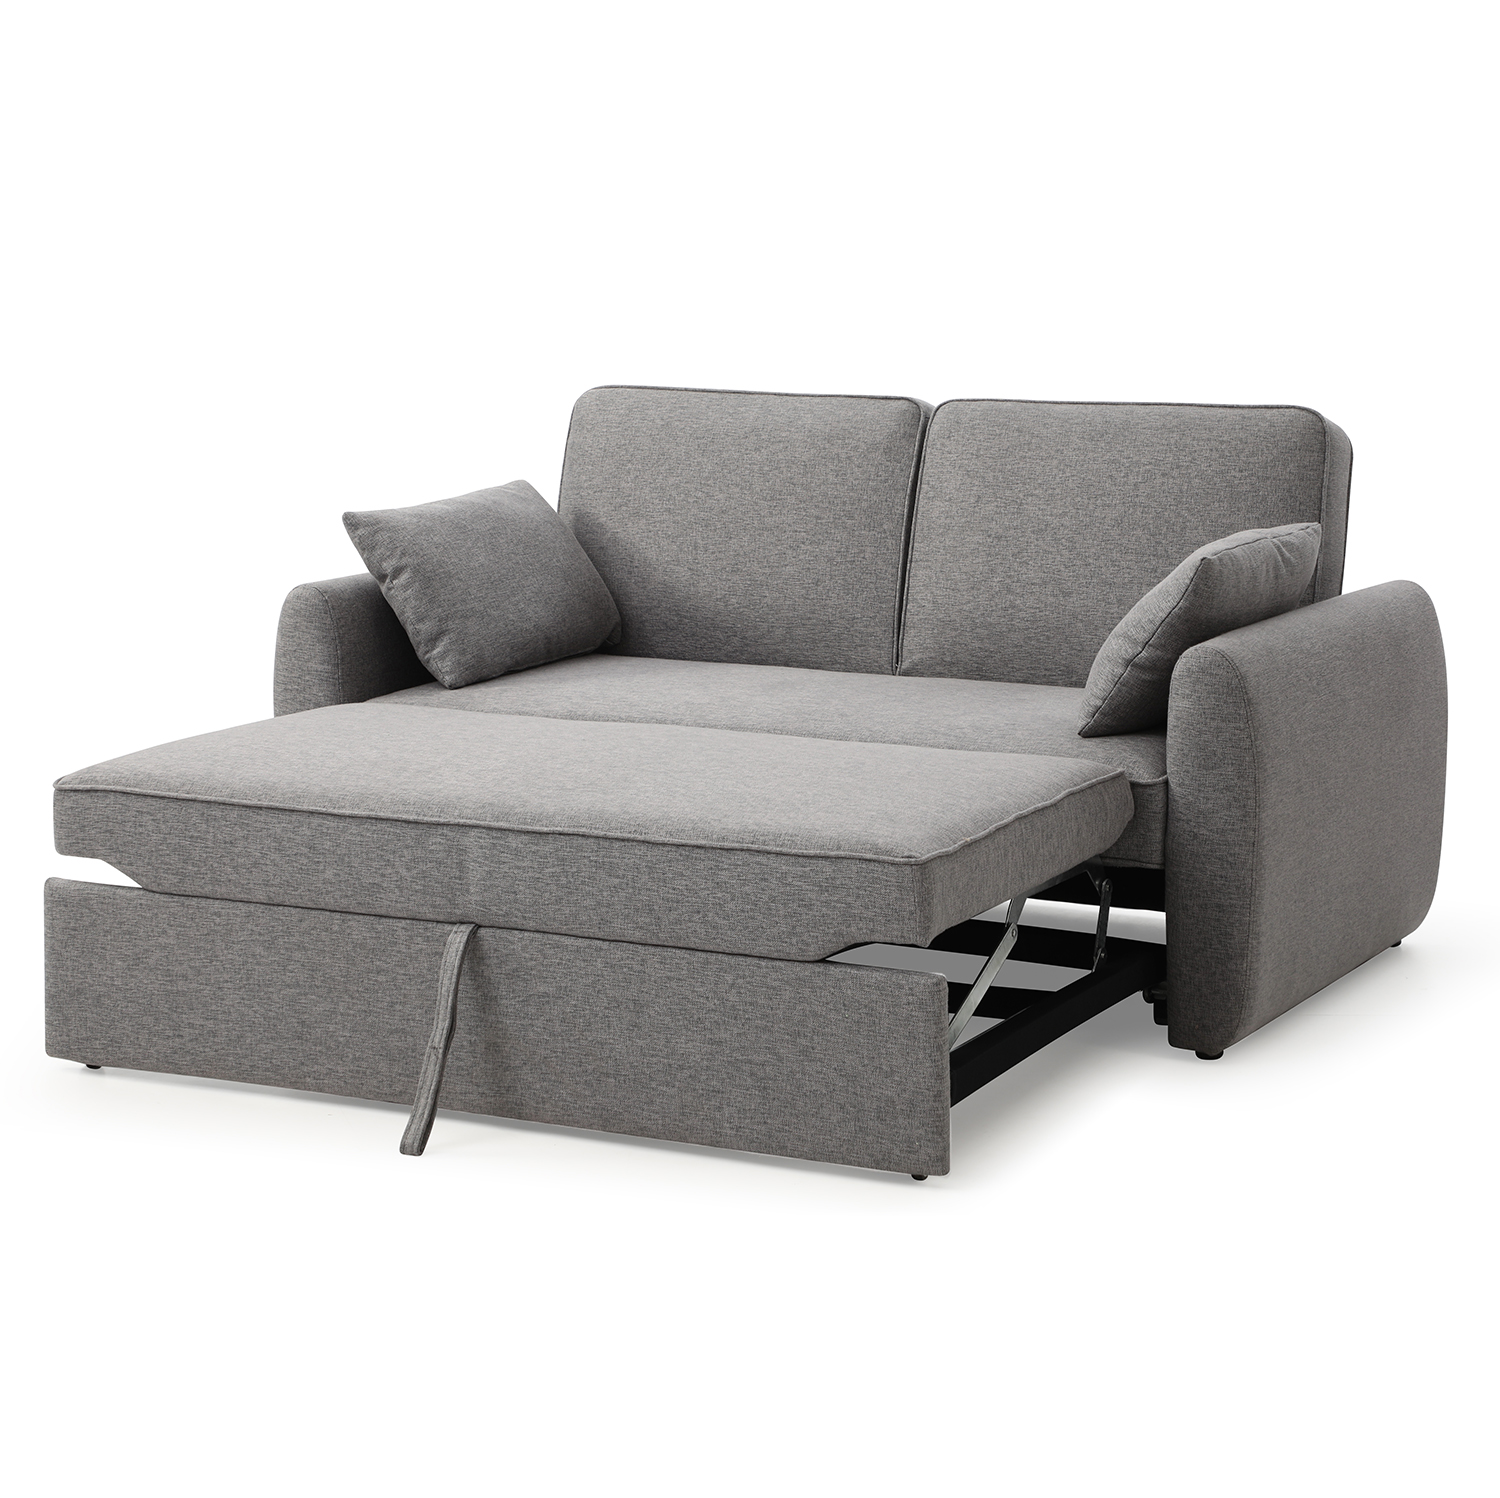 Cameron 2 Seater Sofabed